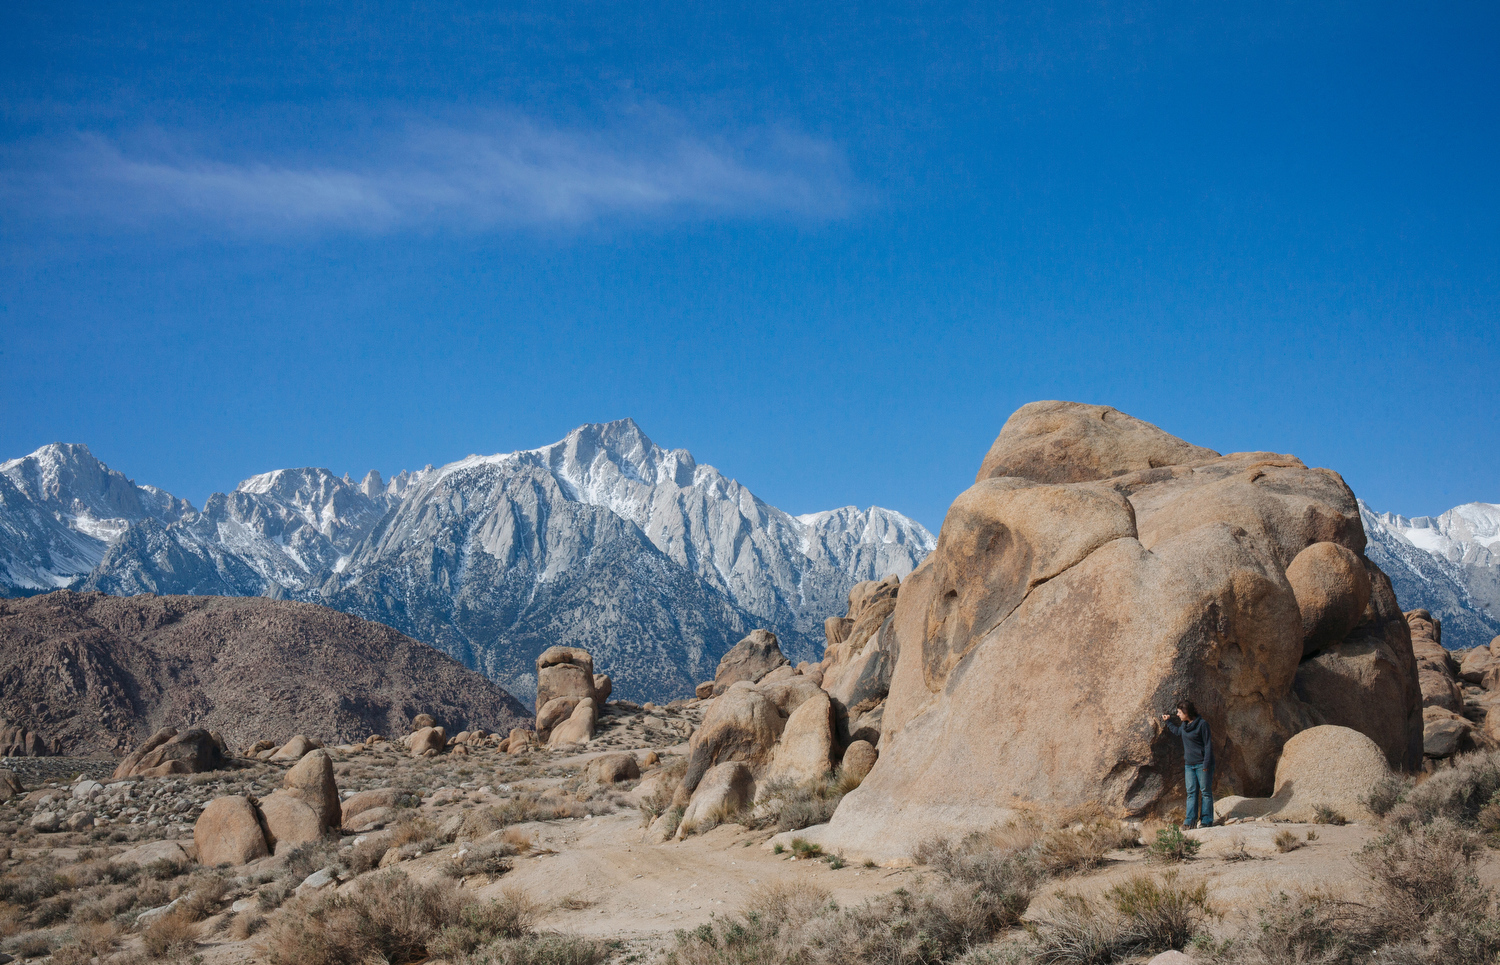 Alabama Hills near Lone Pine, Calif.